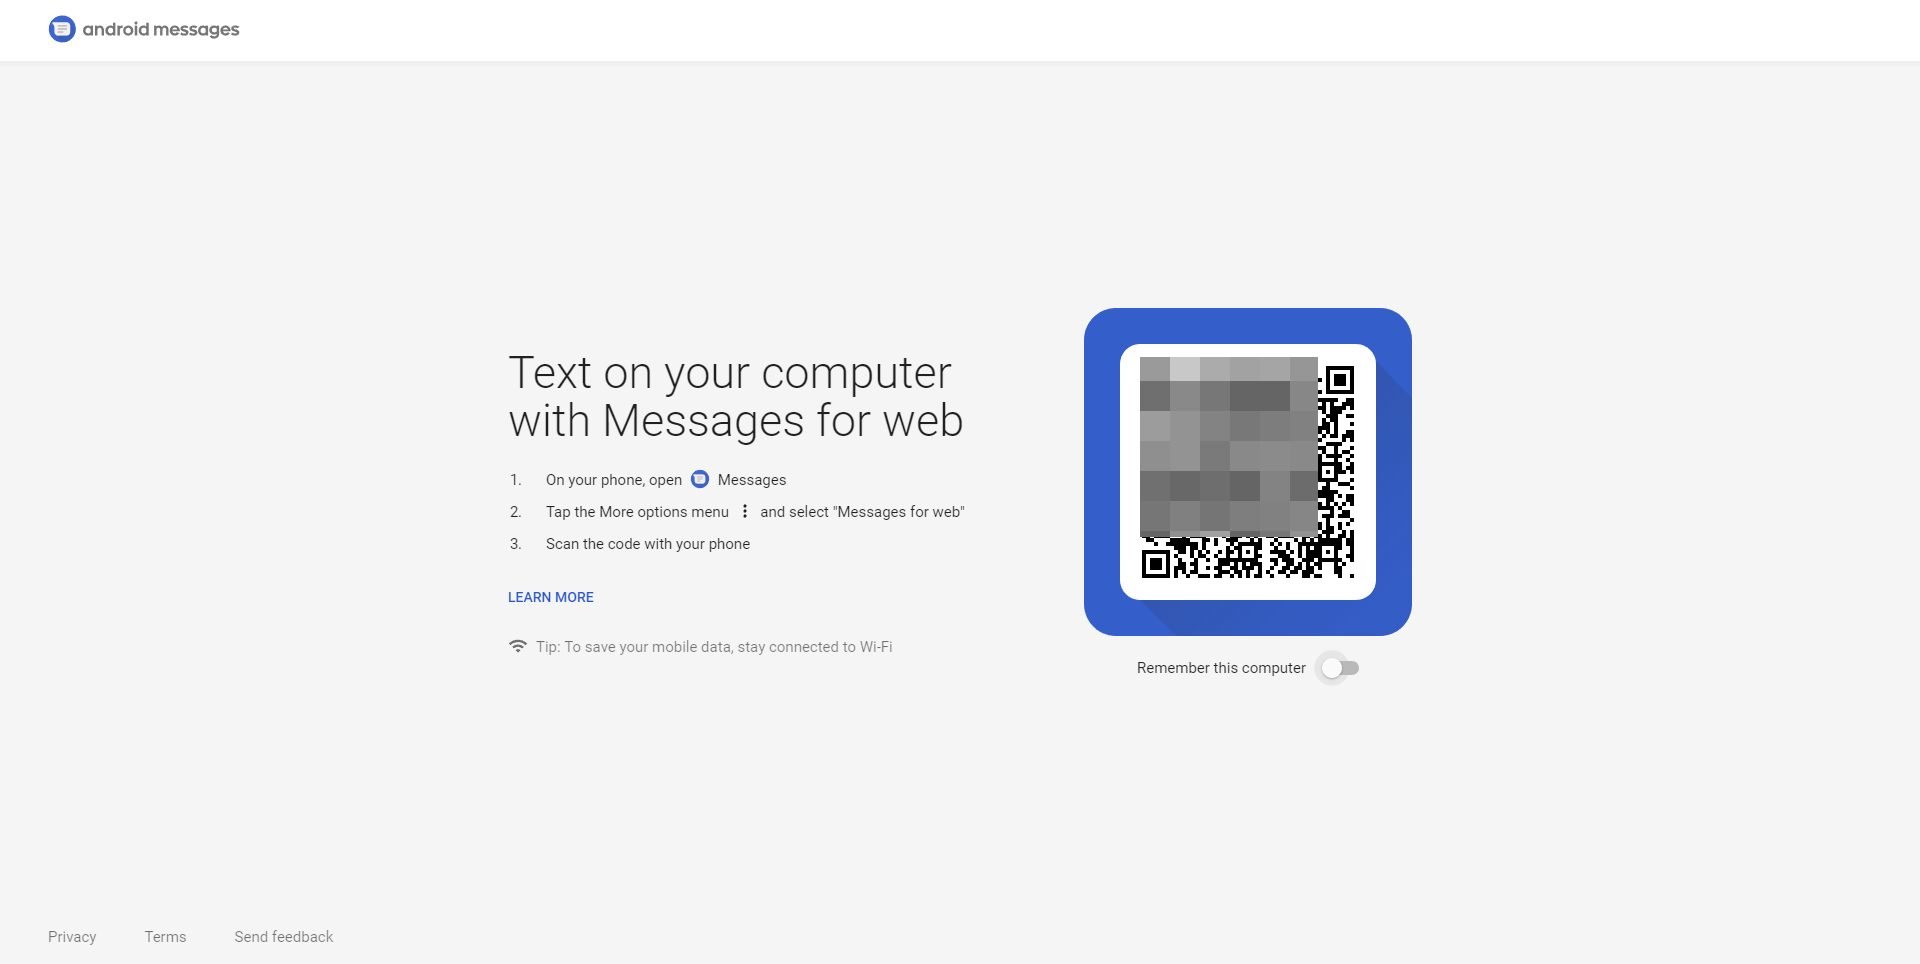 Update: Available to all] Android Messages web interface is starting